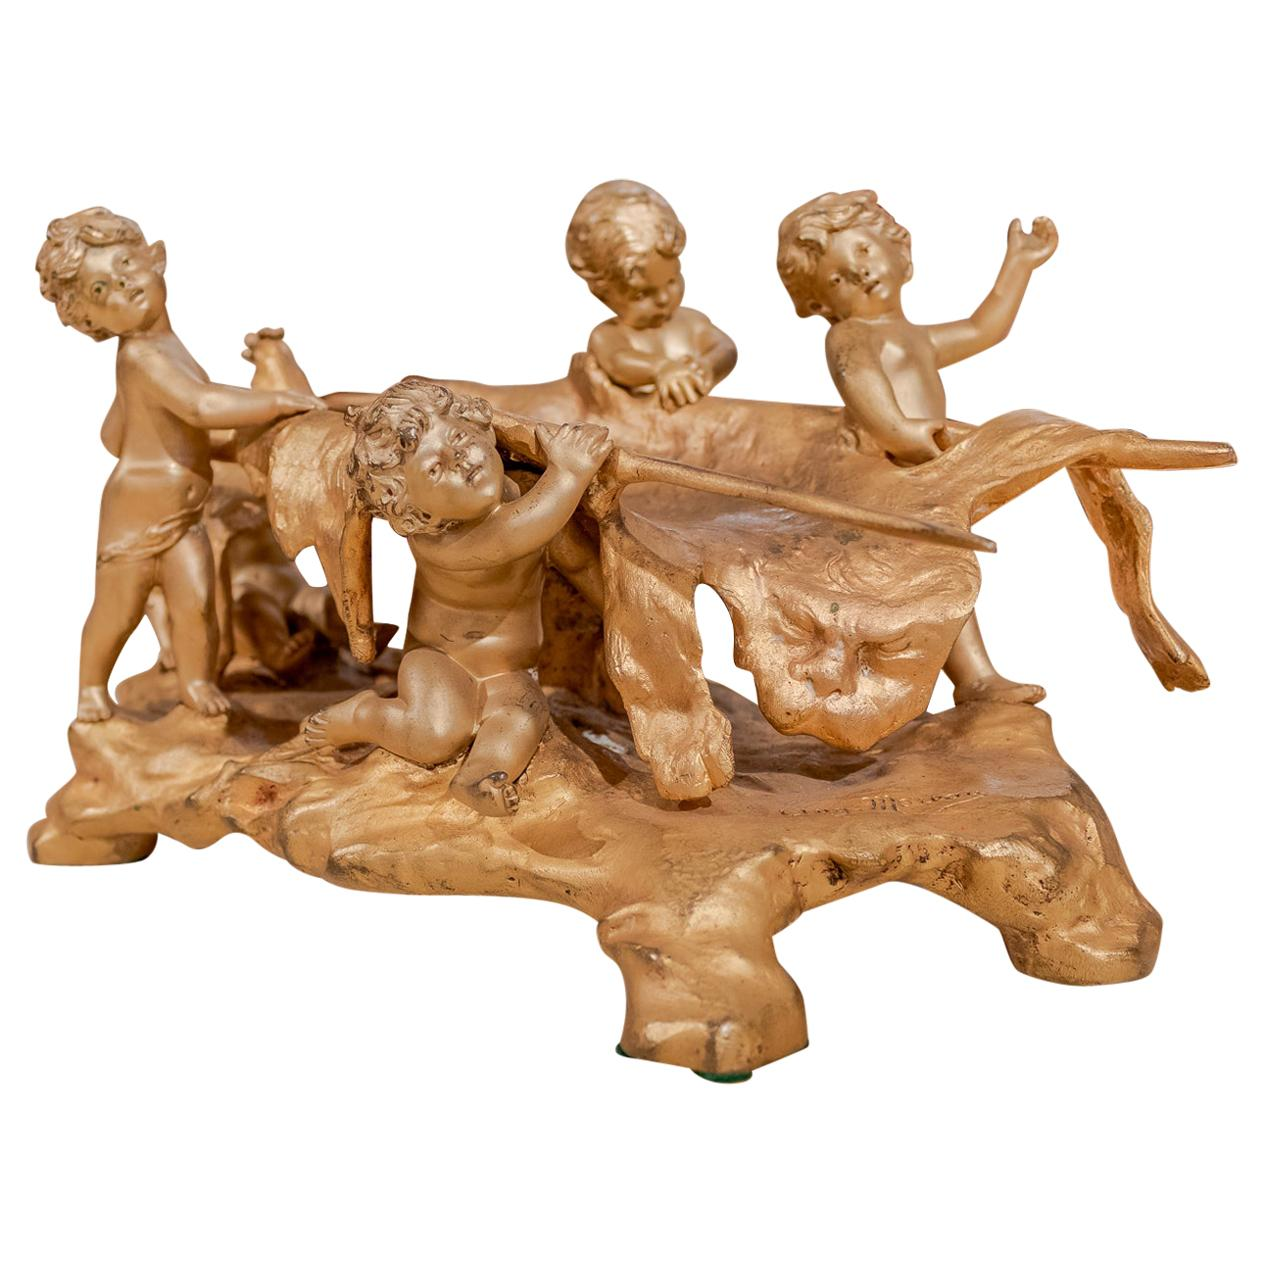 19th Century French Gilt Bronze of Hunting Cherubs with There Kill by Moreau